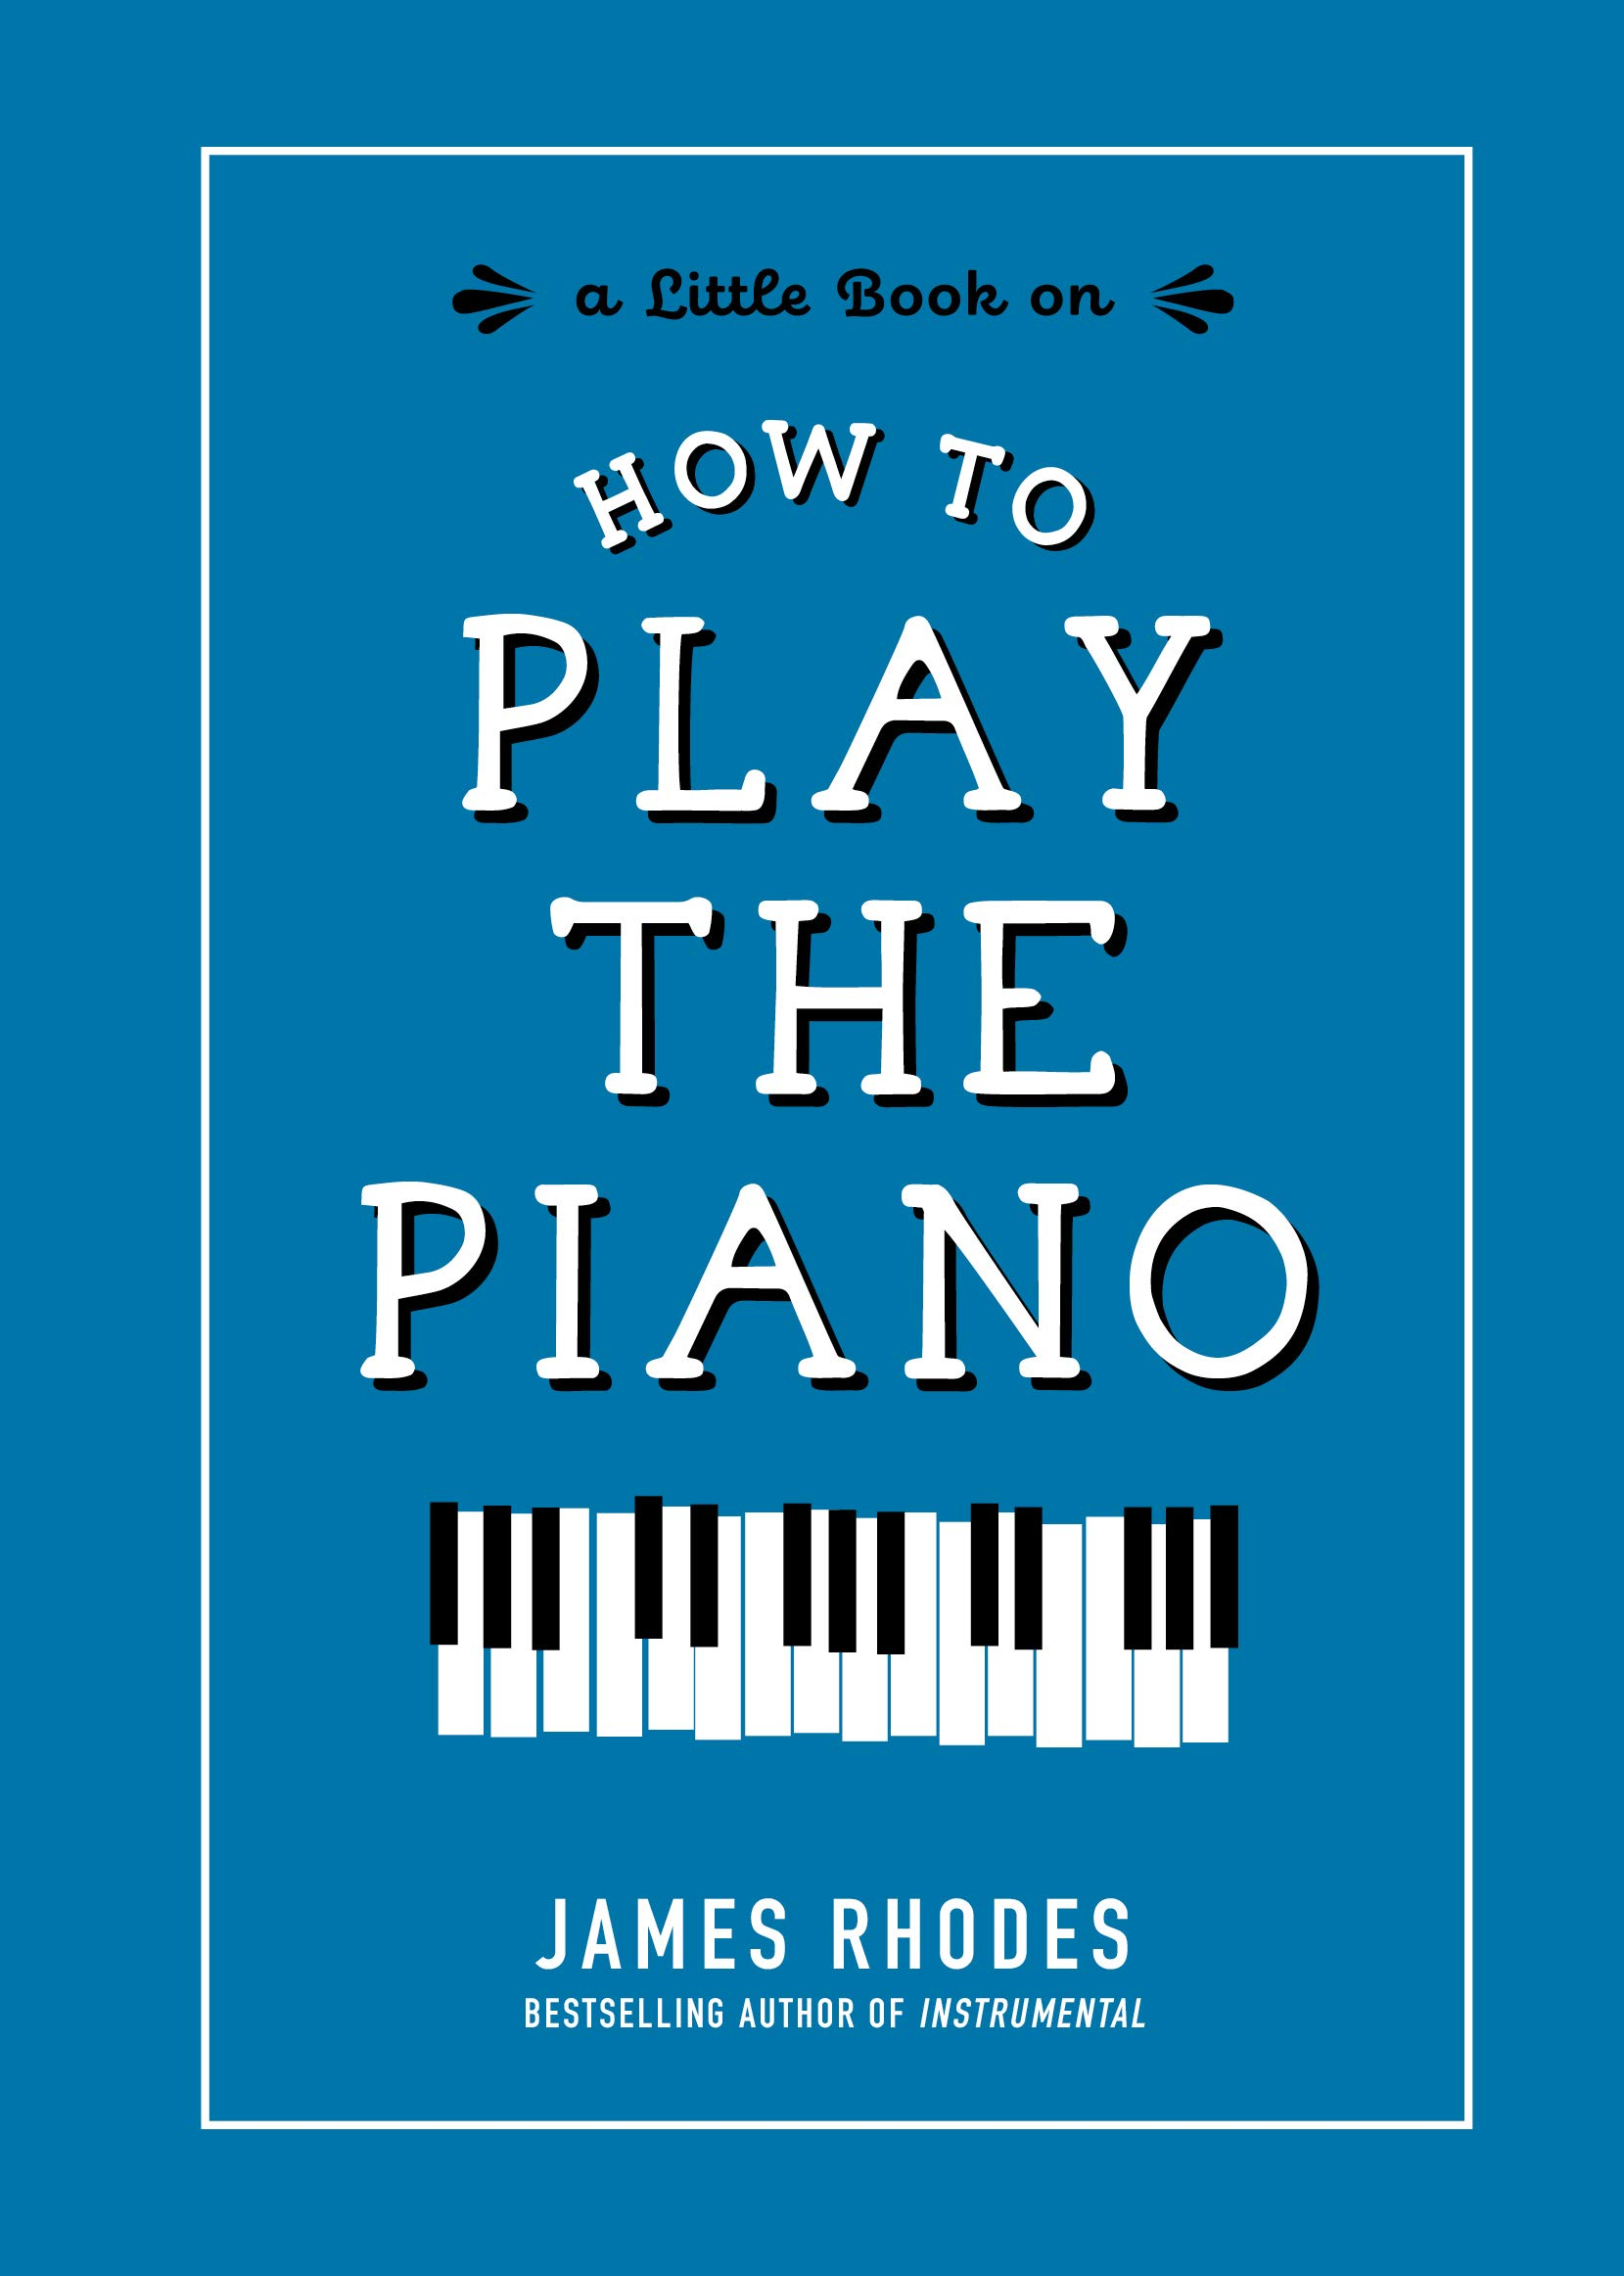 Image result for how to play the piano by james rhodes